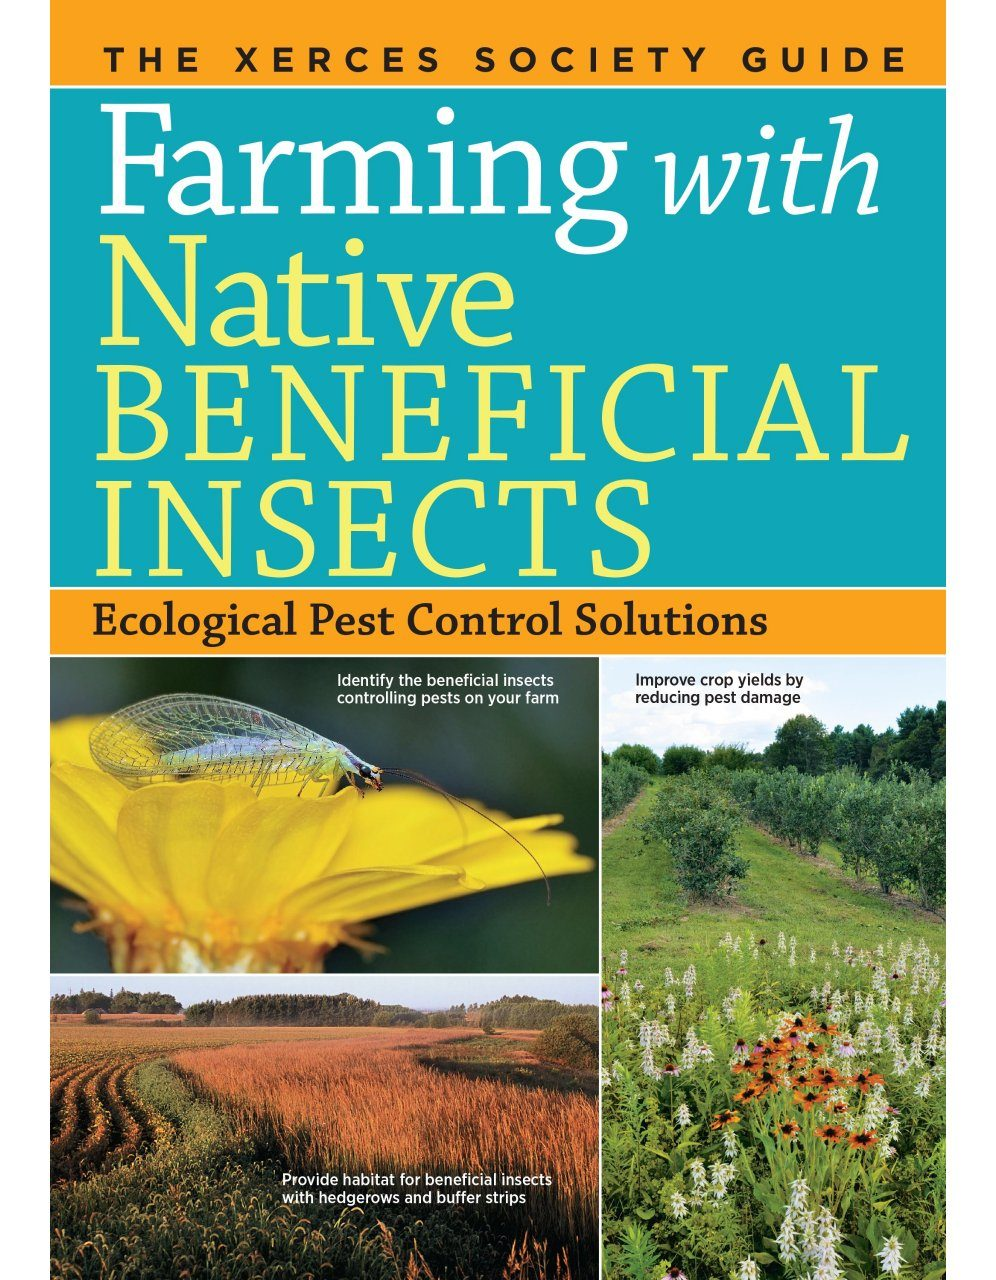 Ecological Pest Control Solutions